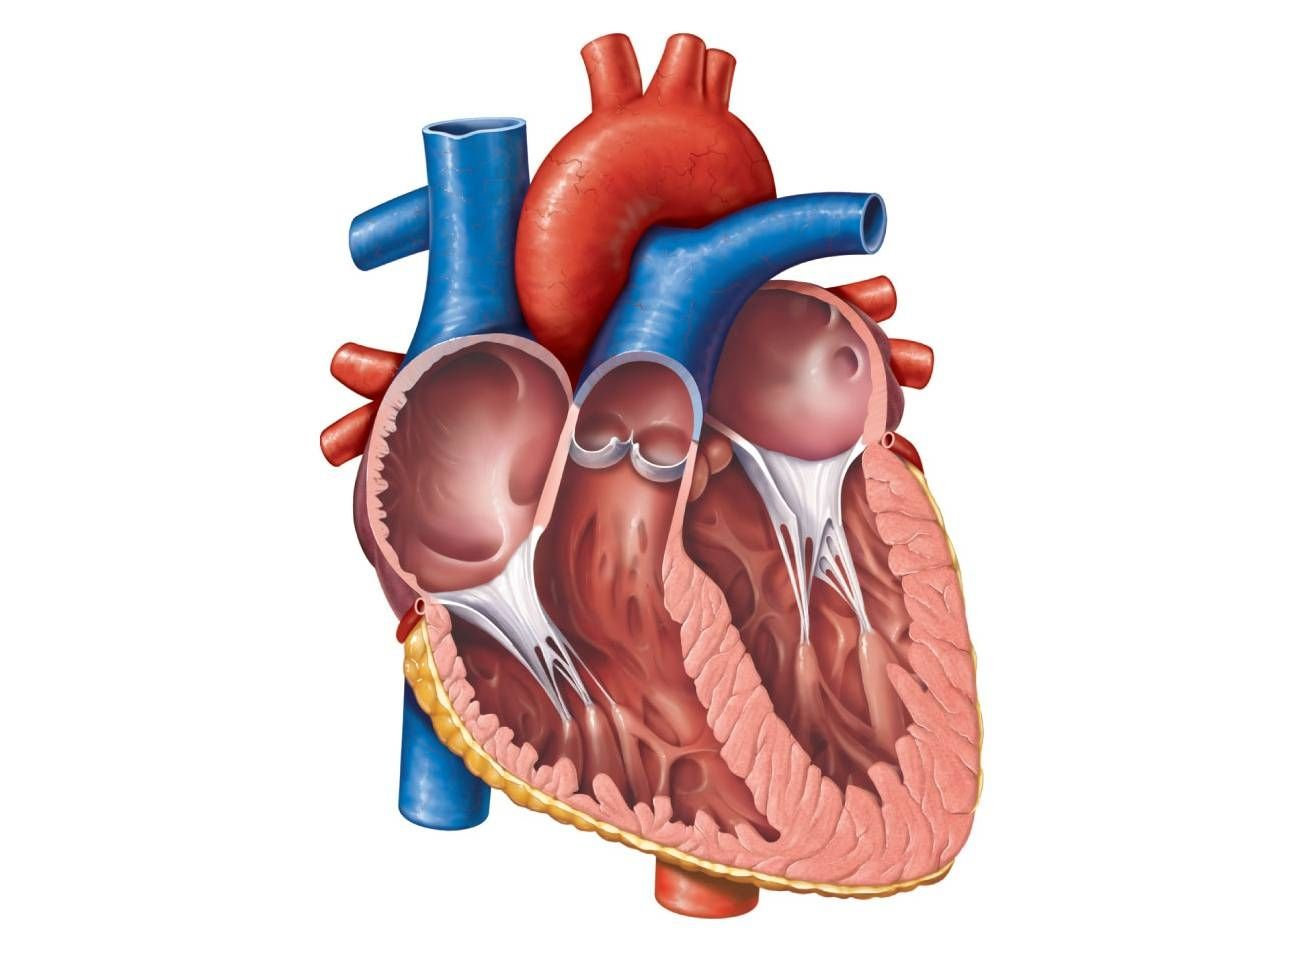 Anatomical Heart Diagram Posterior Easy Food Chain Anatomy Of The Unlabeled